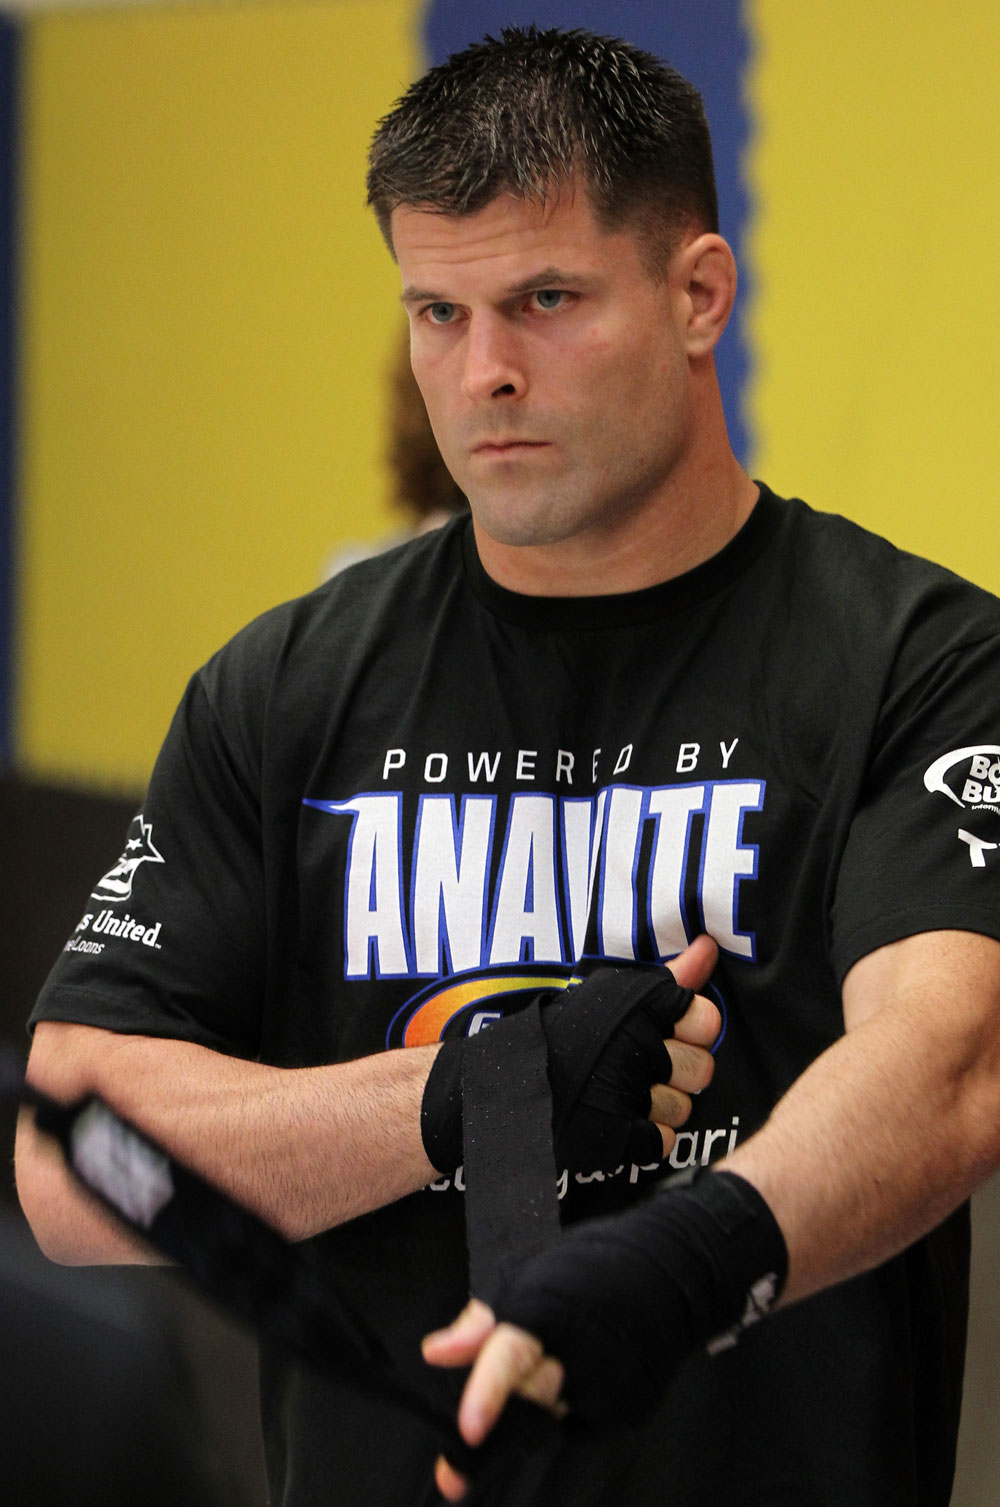 UFC middleweight Brian Stann